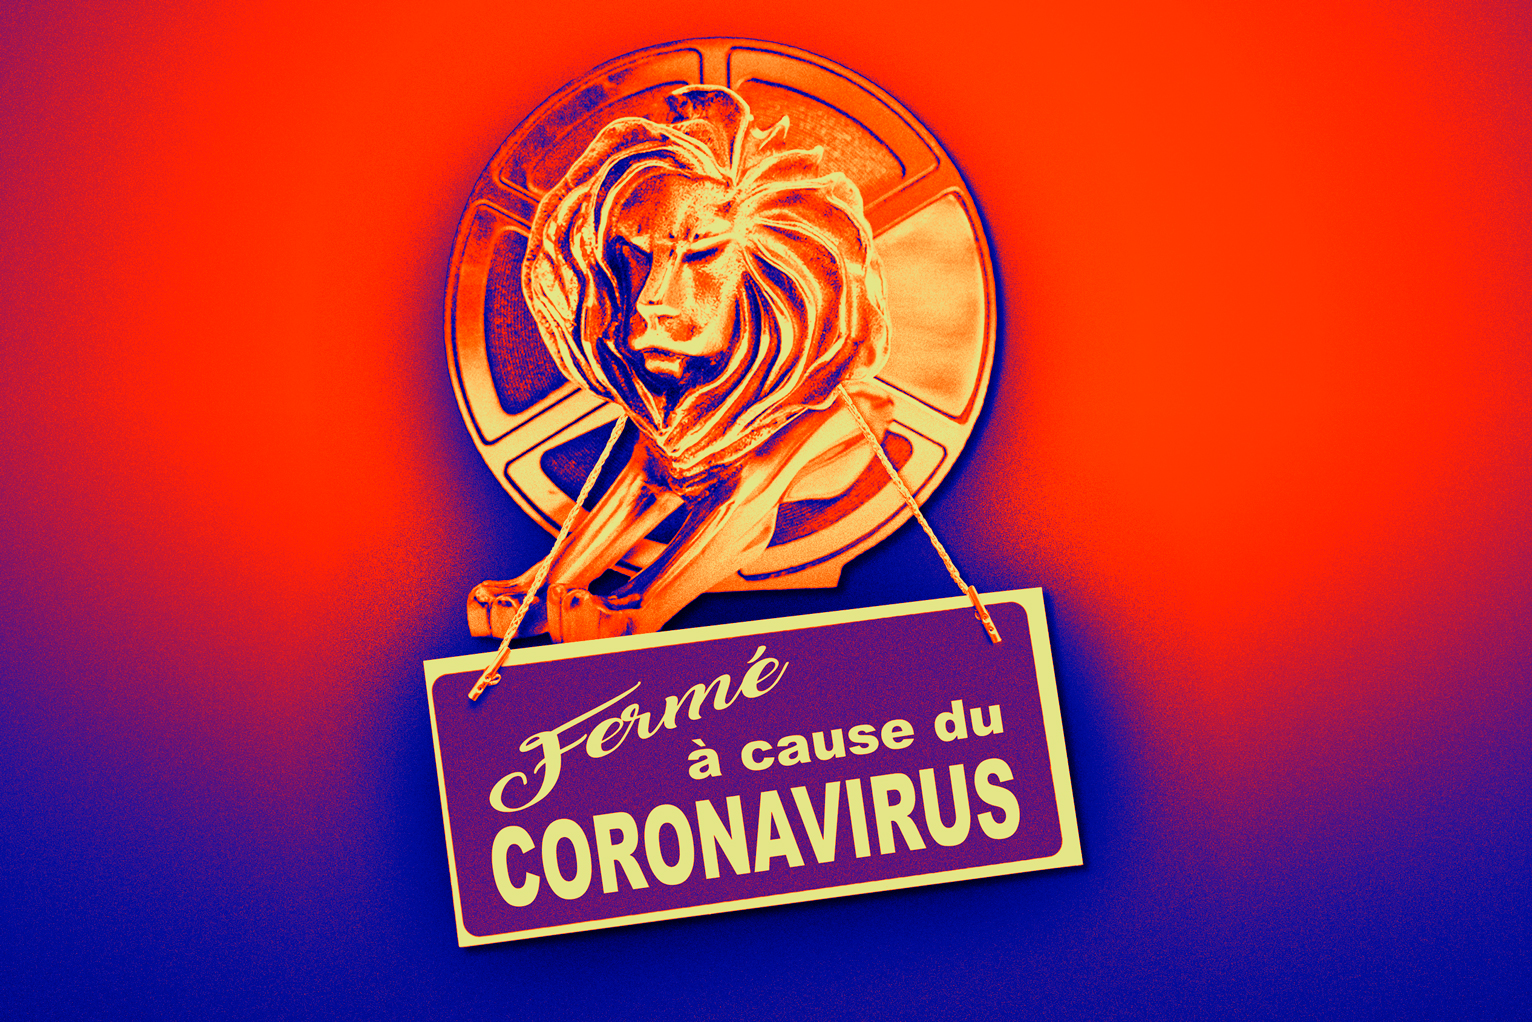 Cannes Lions wants to avoid refunds